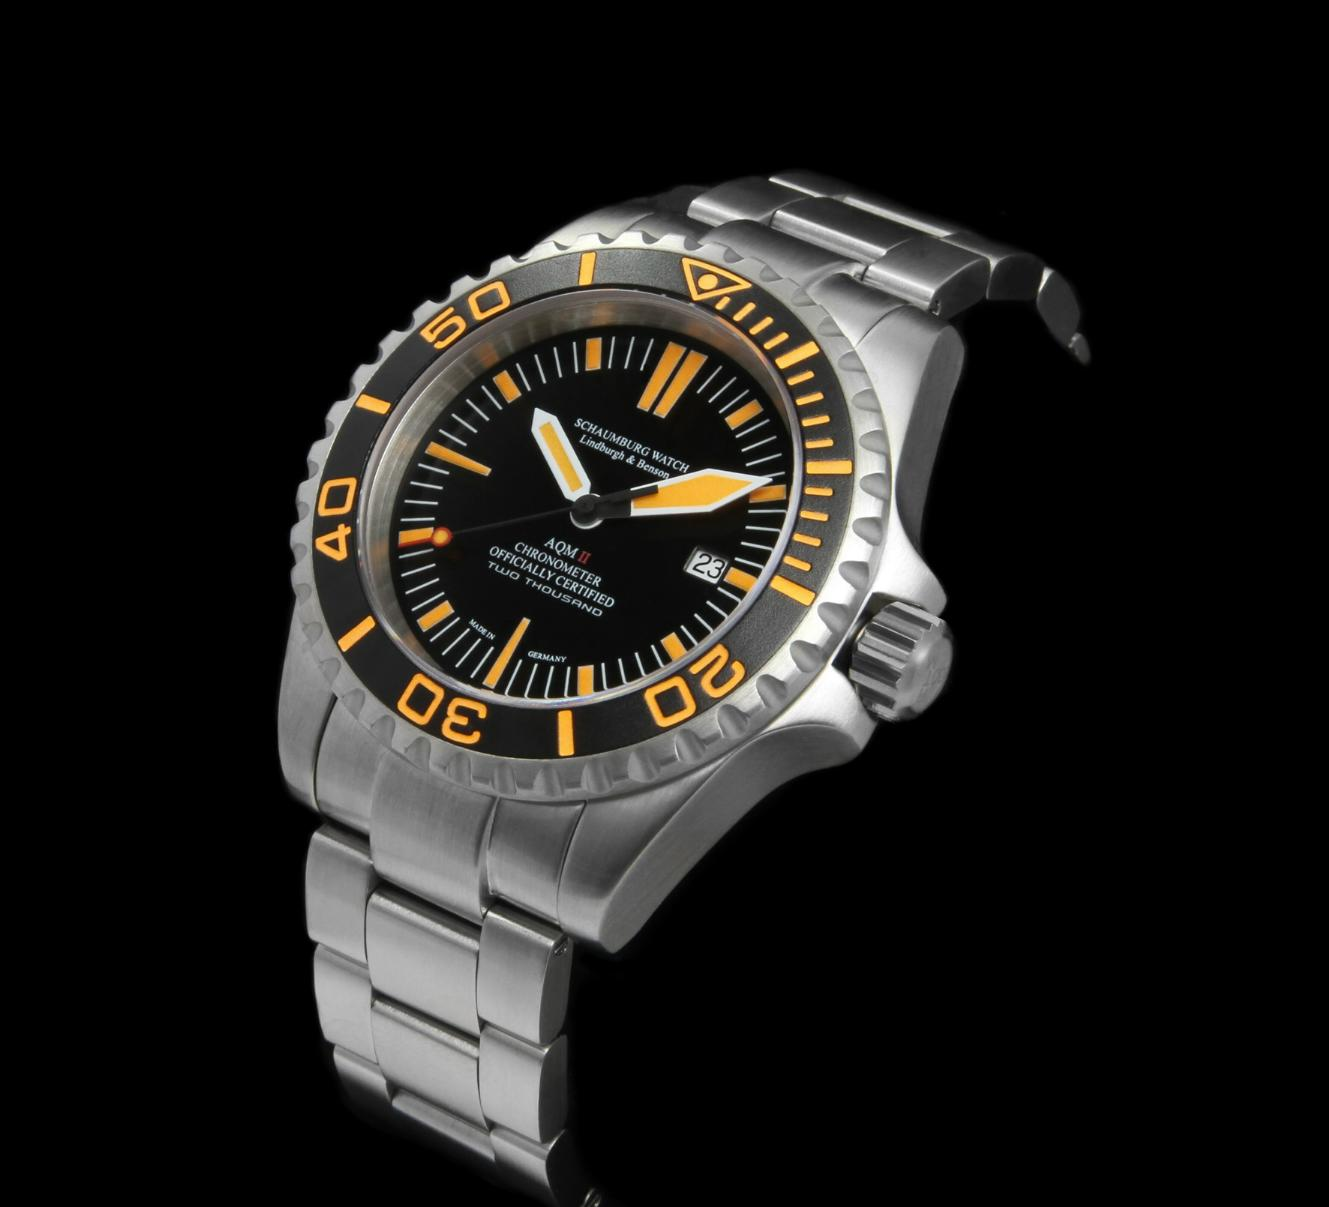 Schaumburg Watch Aquamatic AQM II